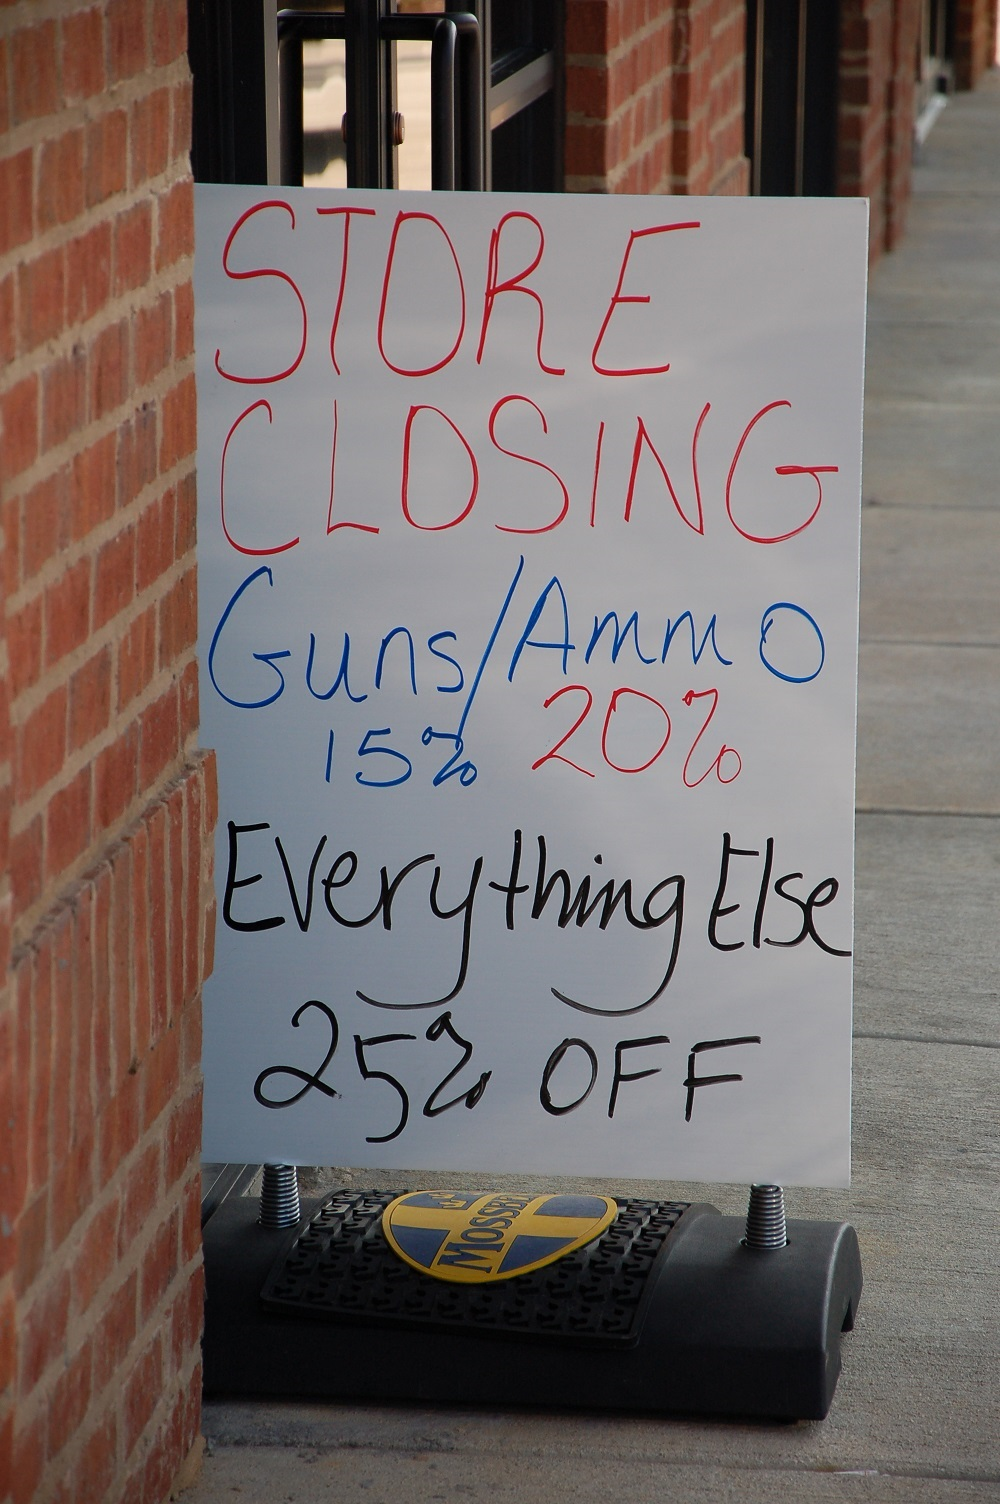 Gun Shops Are Hurting